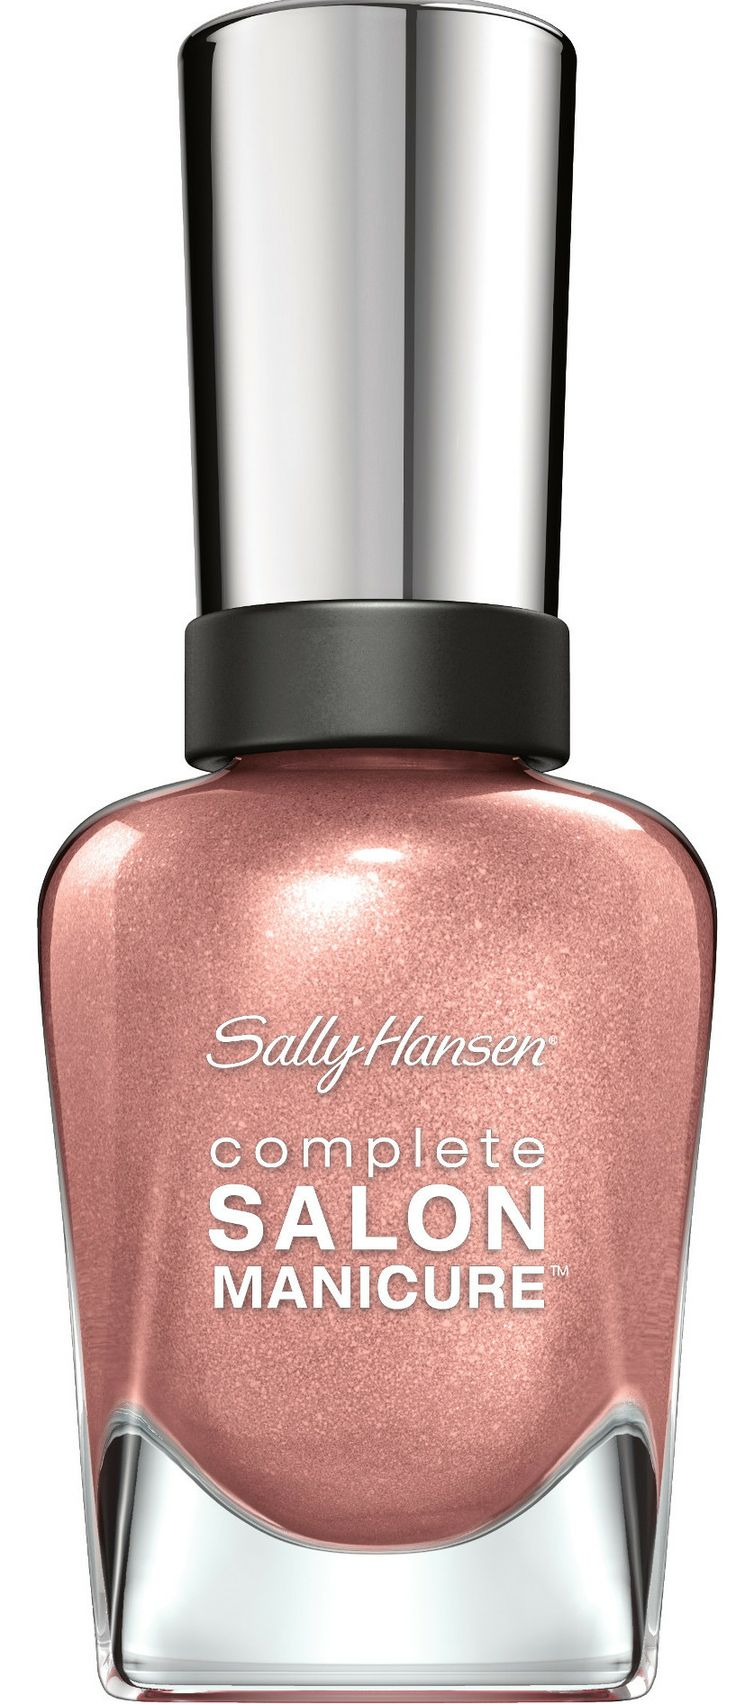 Sally Hansen Complete Salon Manicure - Gold Roses